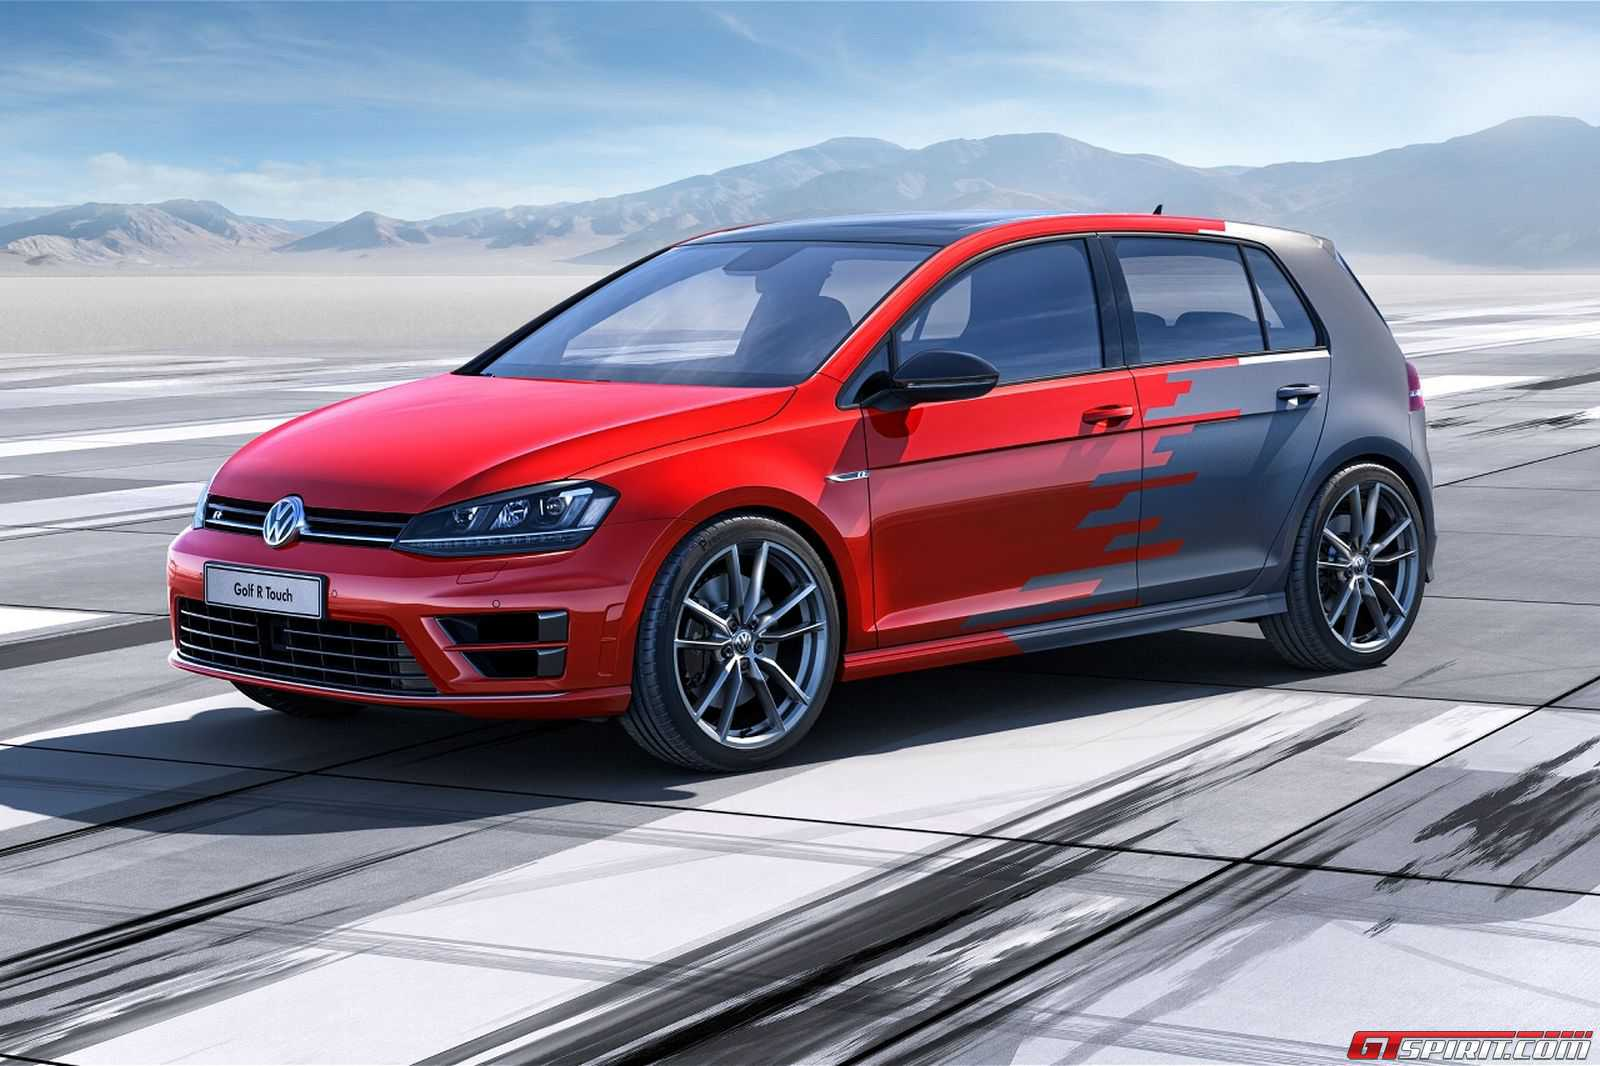 Official: Volkswagen Golf R Touch Concept - GTspirit